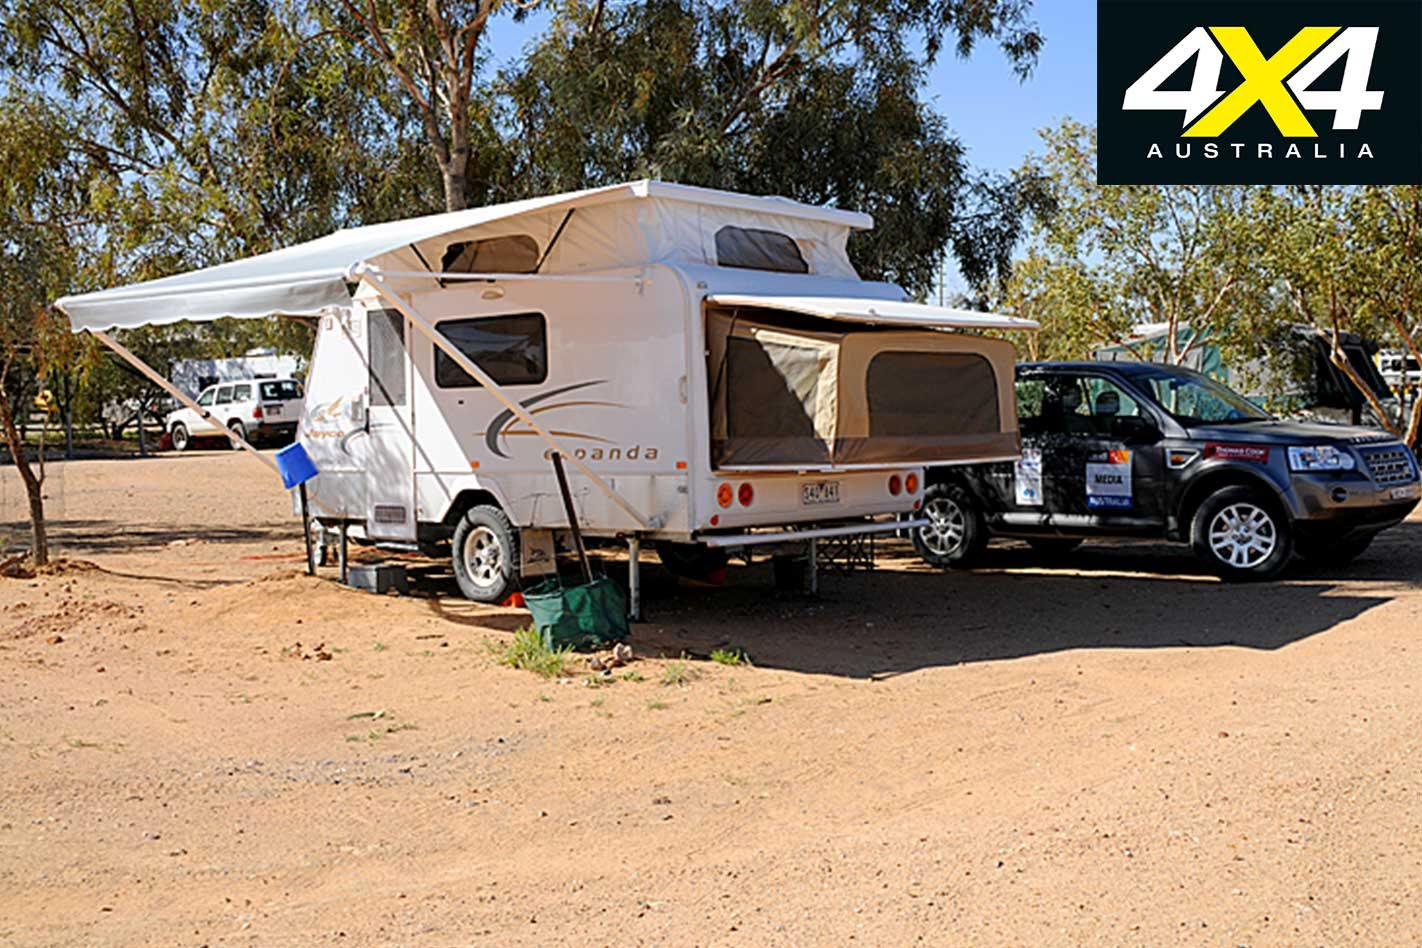 0fb367cd39 The entry level en-suite model with single drop-down double bed weighed in  at just over 1500kg in basic  Outback  spec.